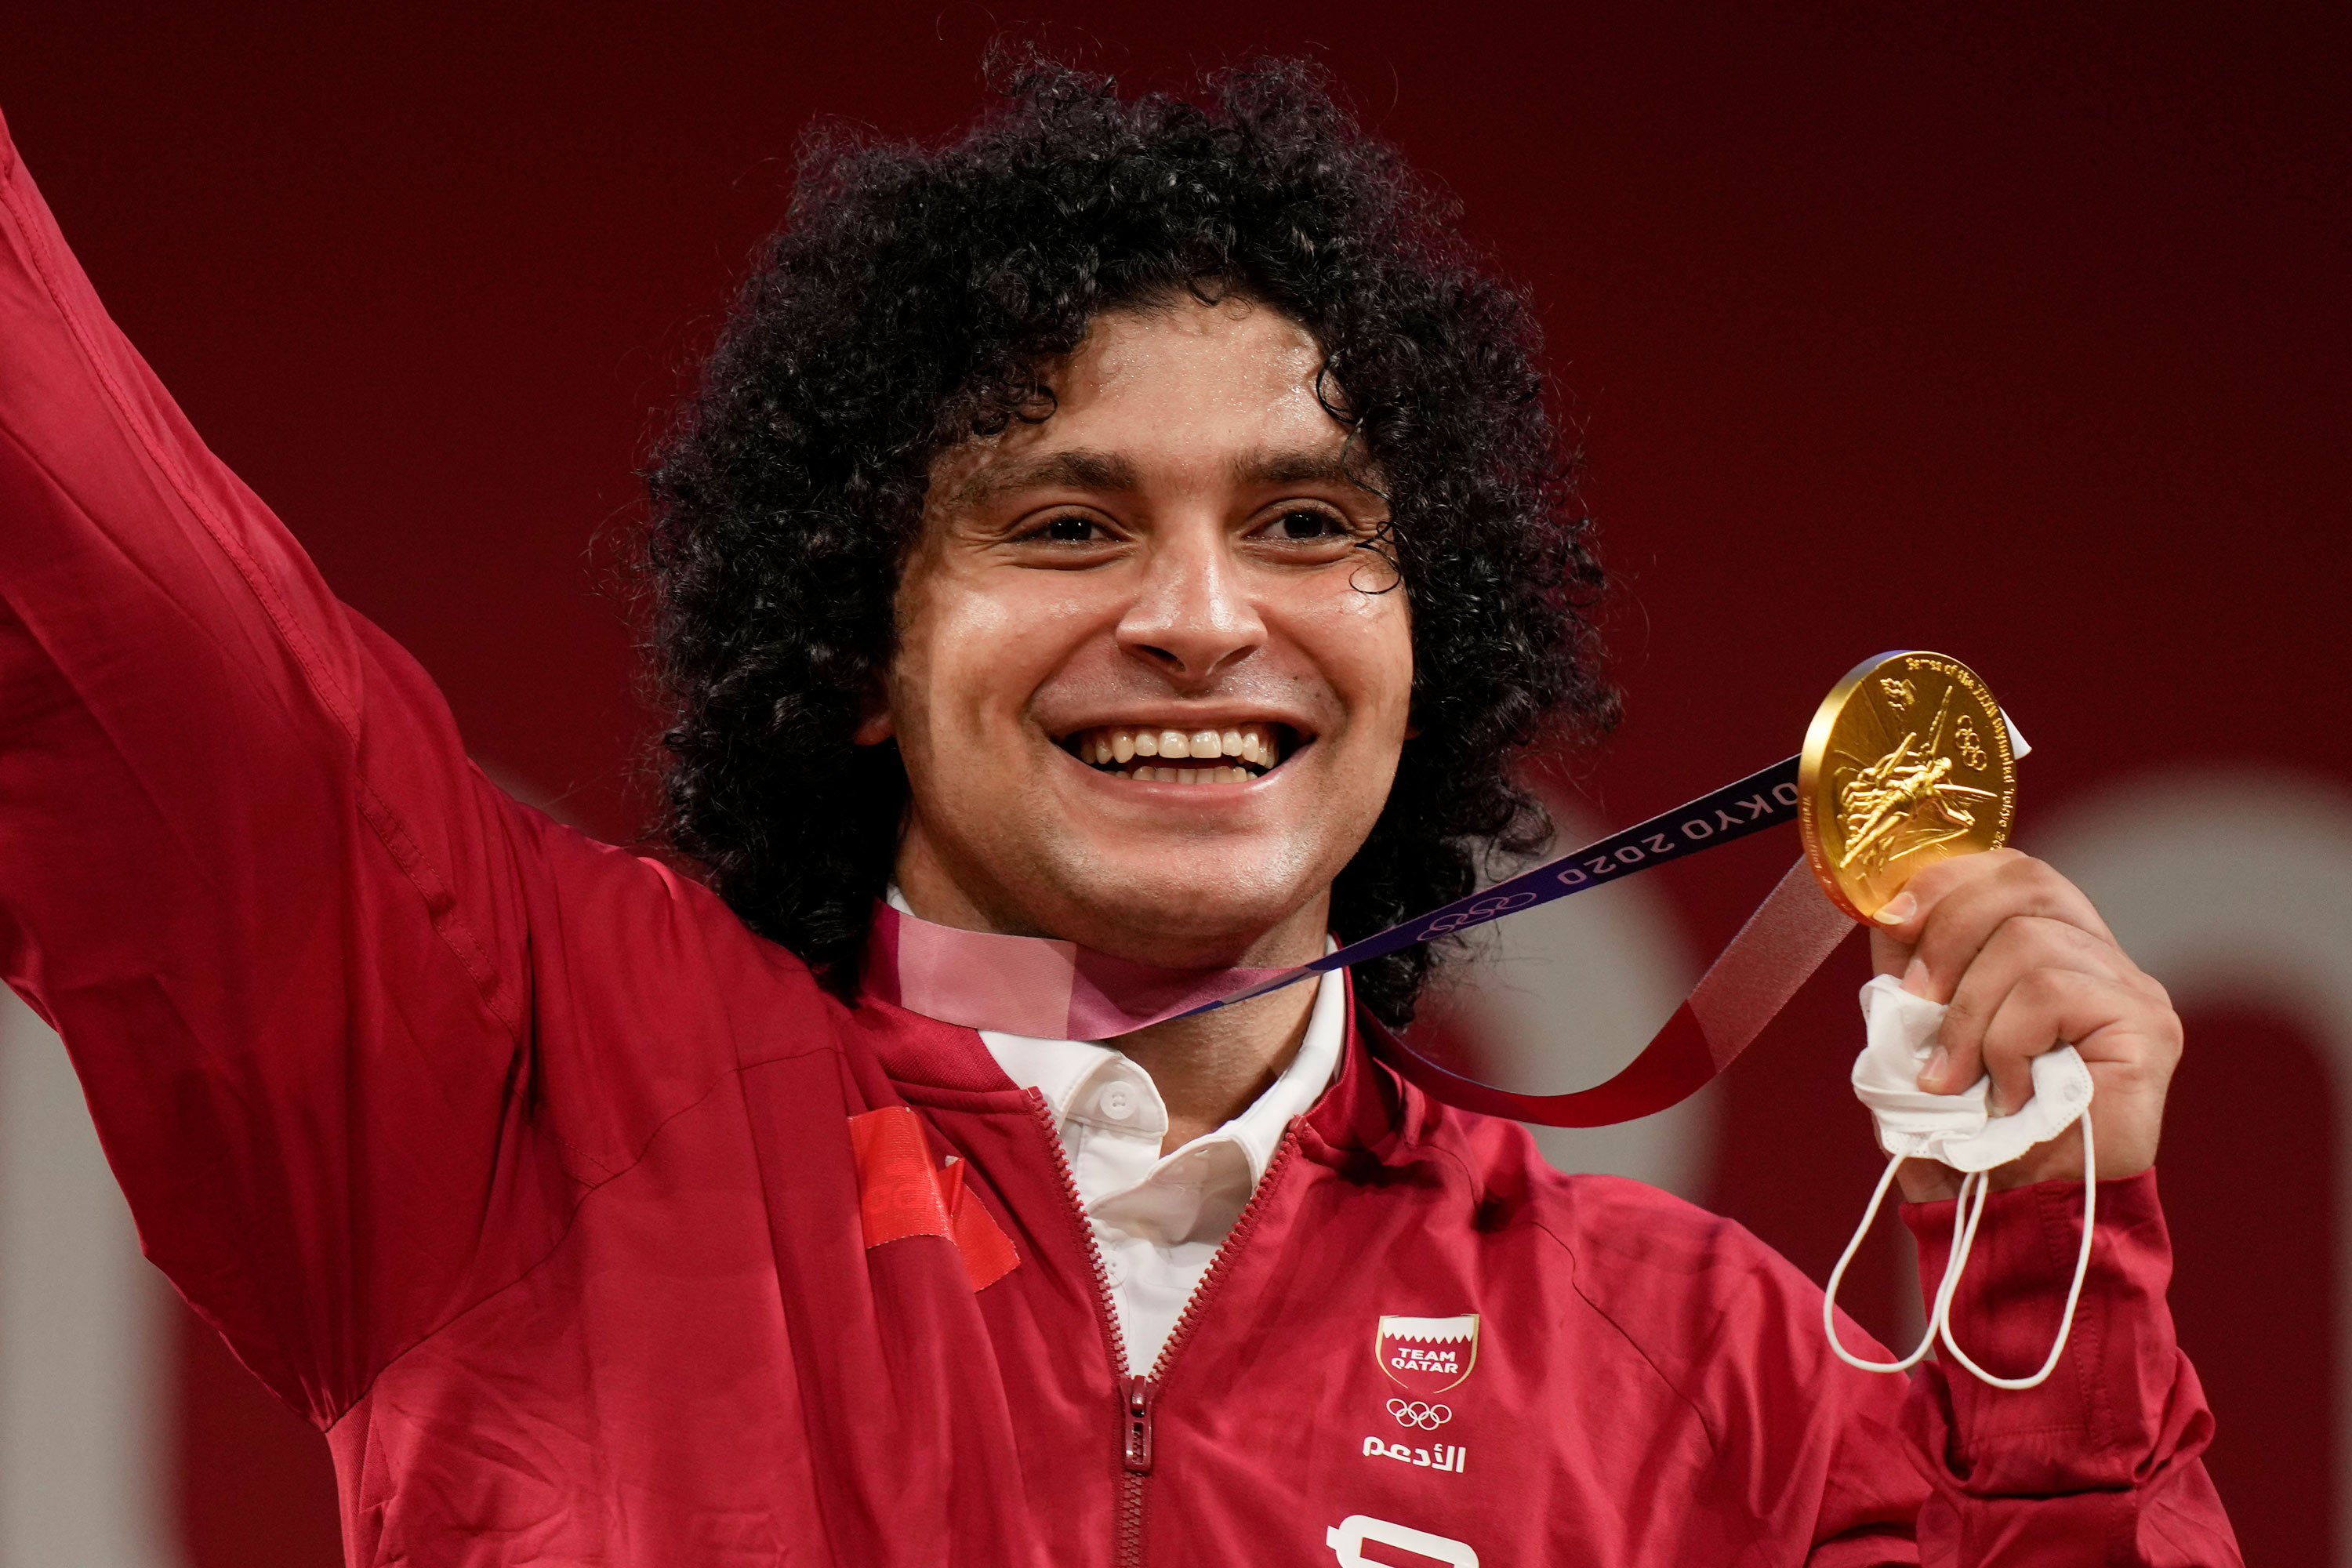 Qatar's Fares El-Bakh celebrates on the podium after winning the gold medal in the 96kg weightlifting event on July 31.